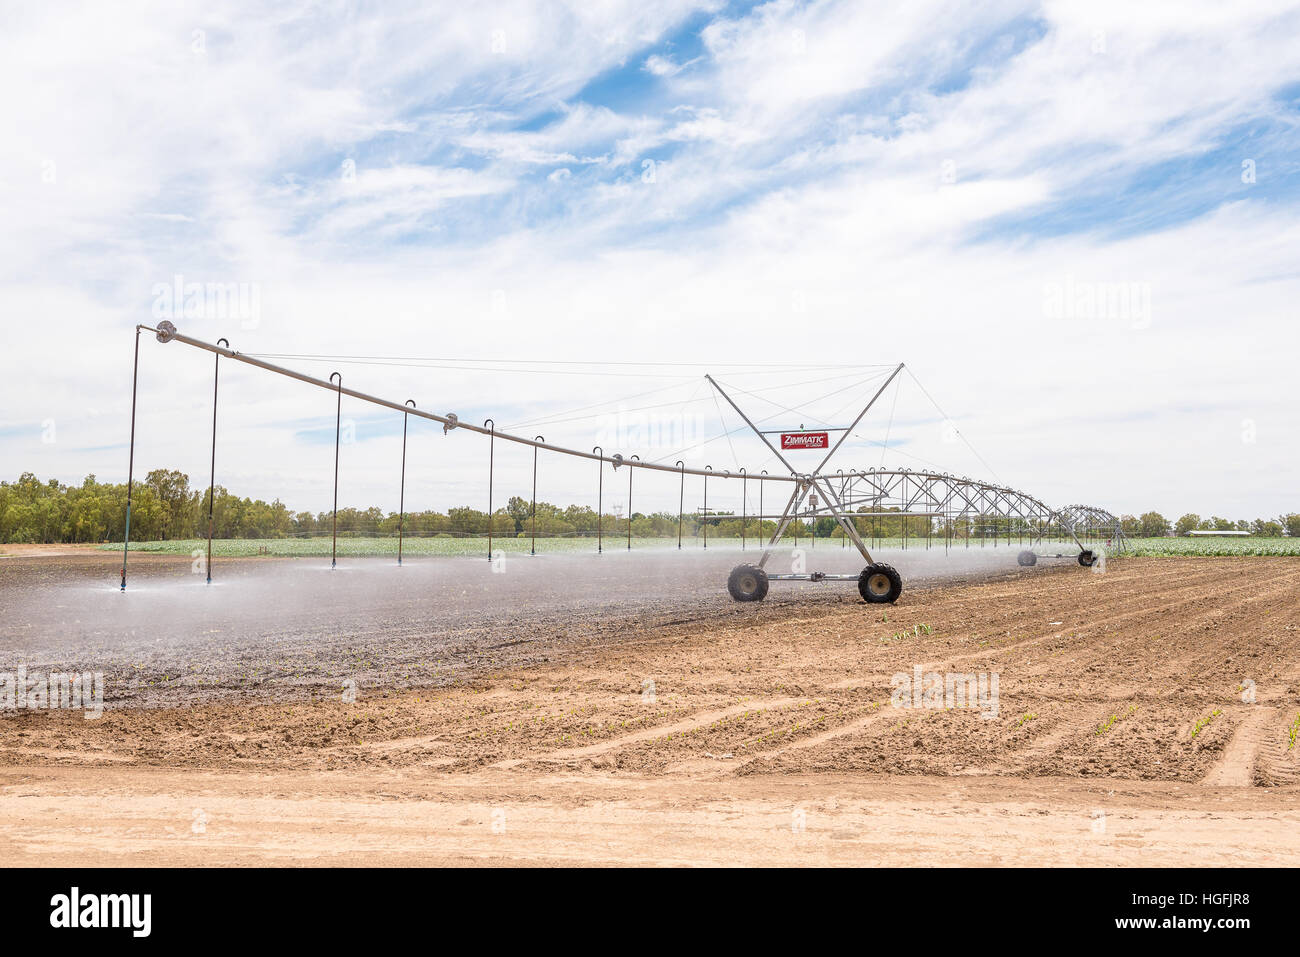 JACOBSDAL, SOUTH AFRICA - DECEMBER 24, 2016: A center pivot irrigation system in a corn field using rotator style - Stock Image